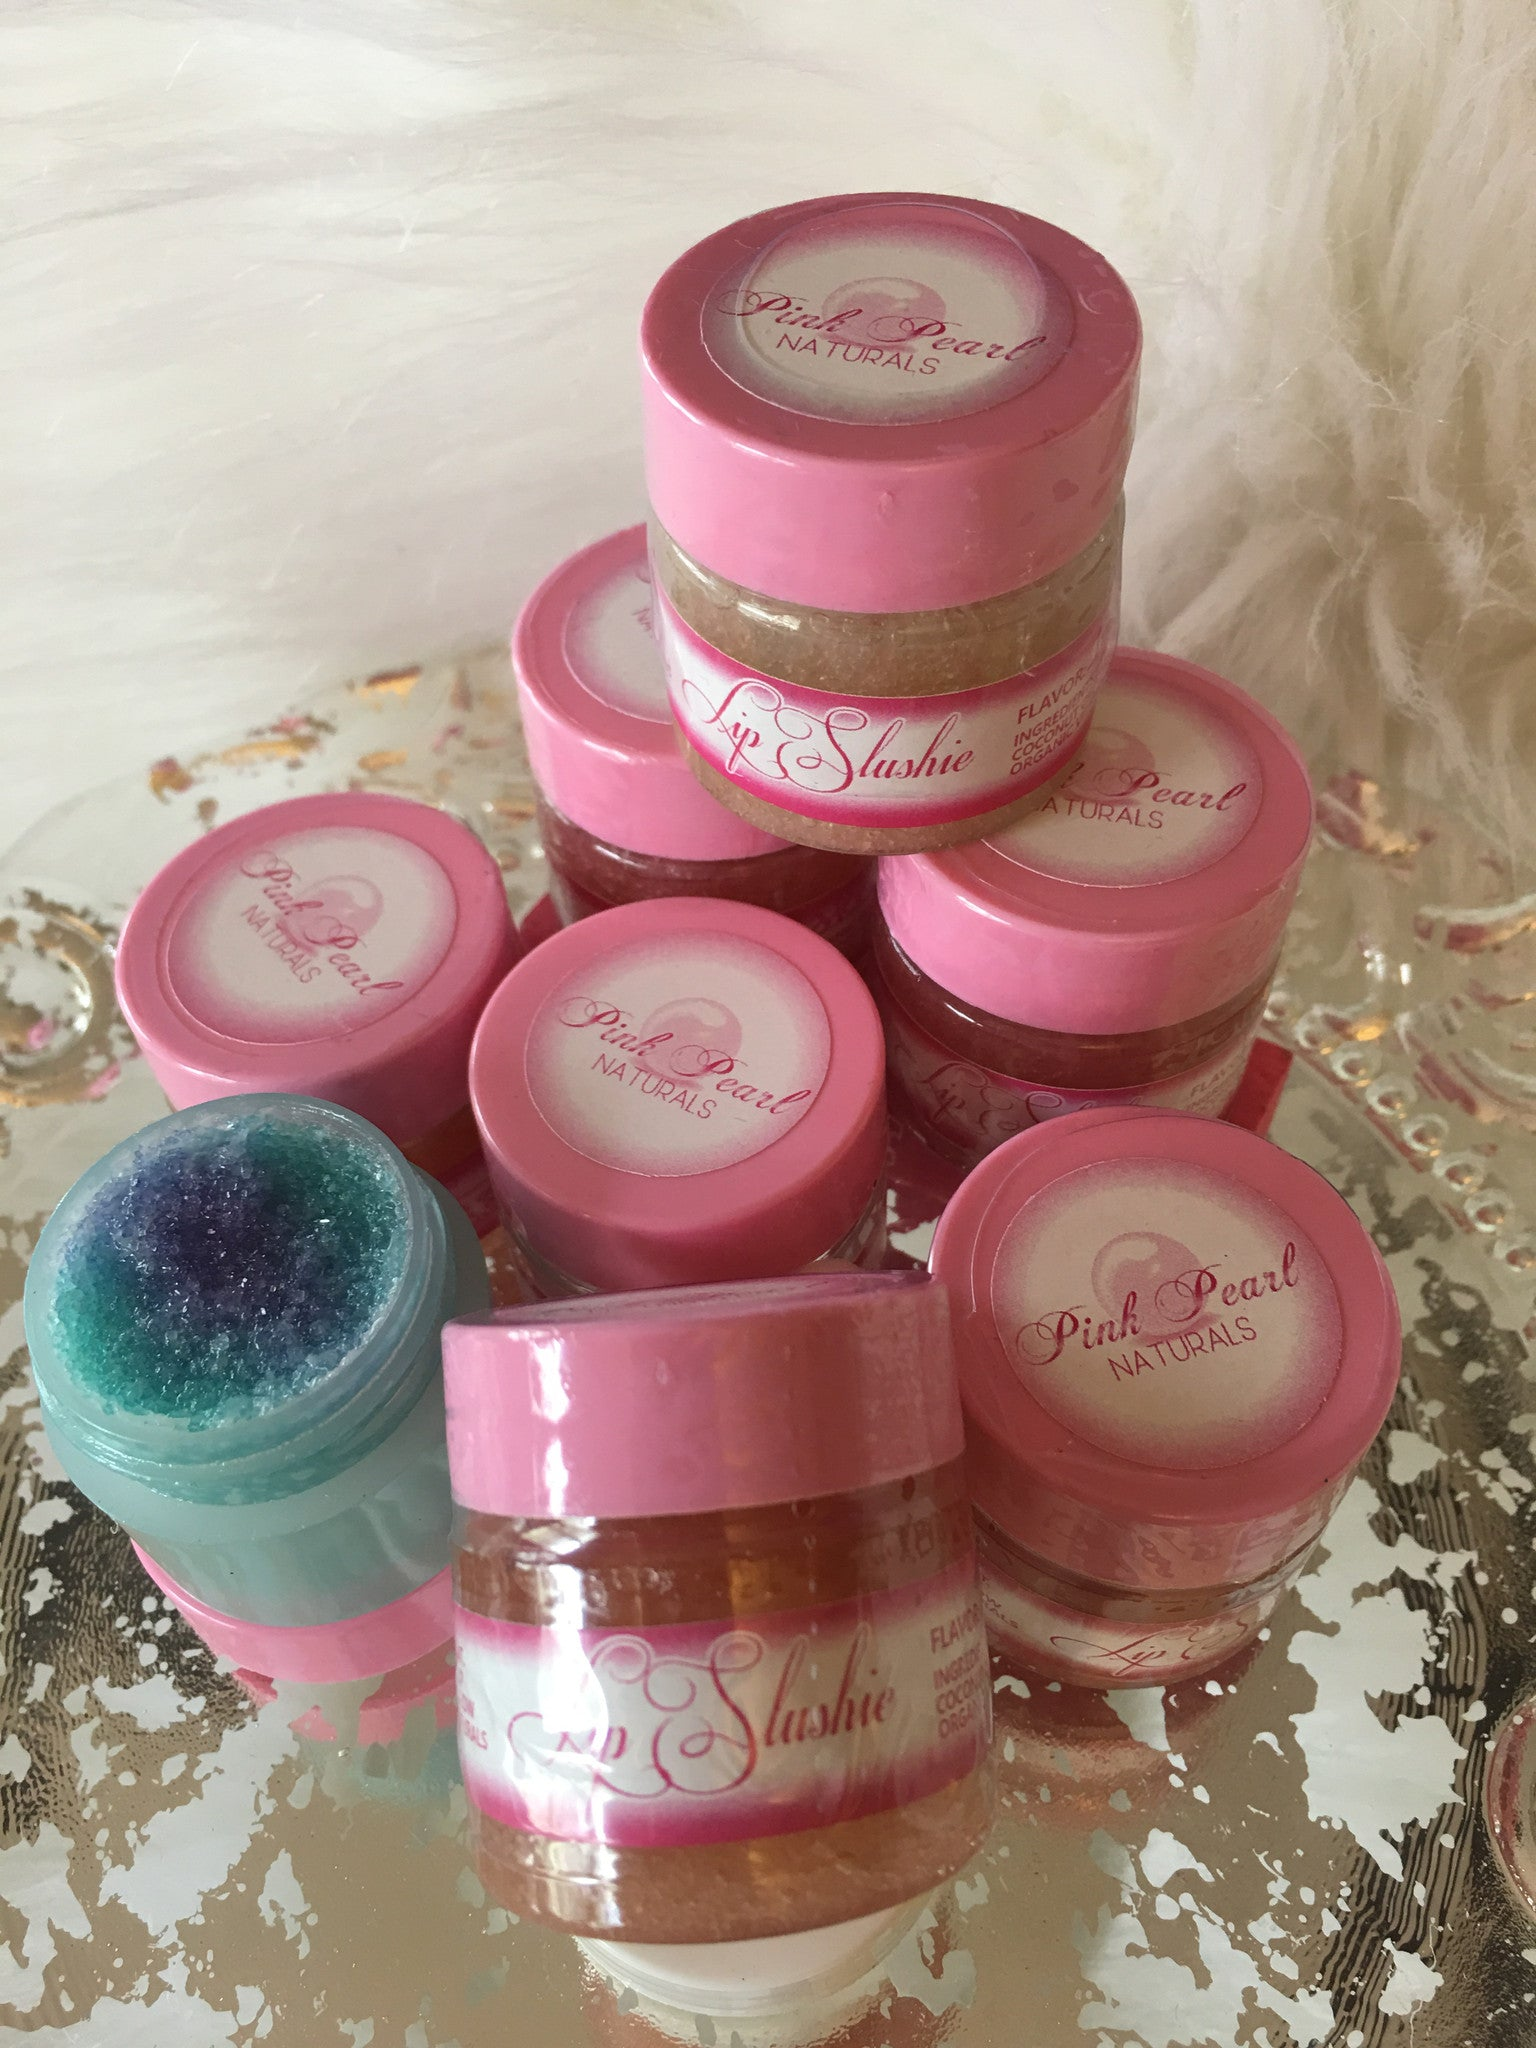 SIGNATURE EXFOLIATING LIP SLUSHIES .5OZ